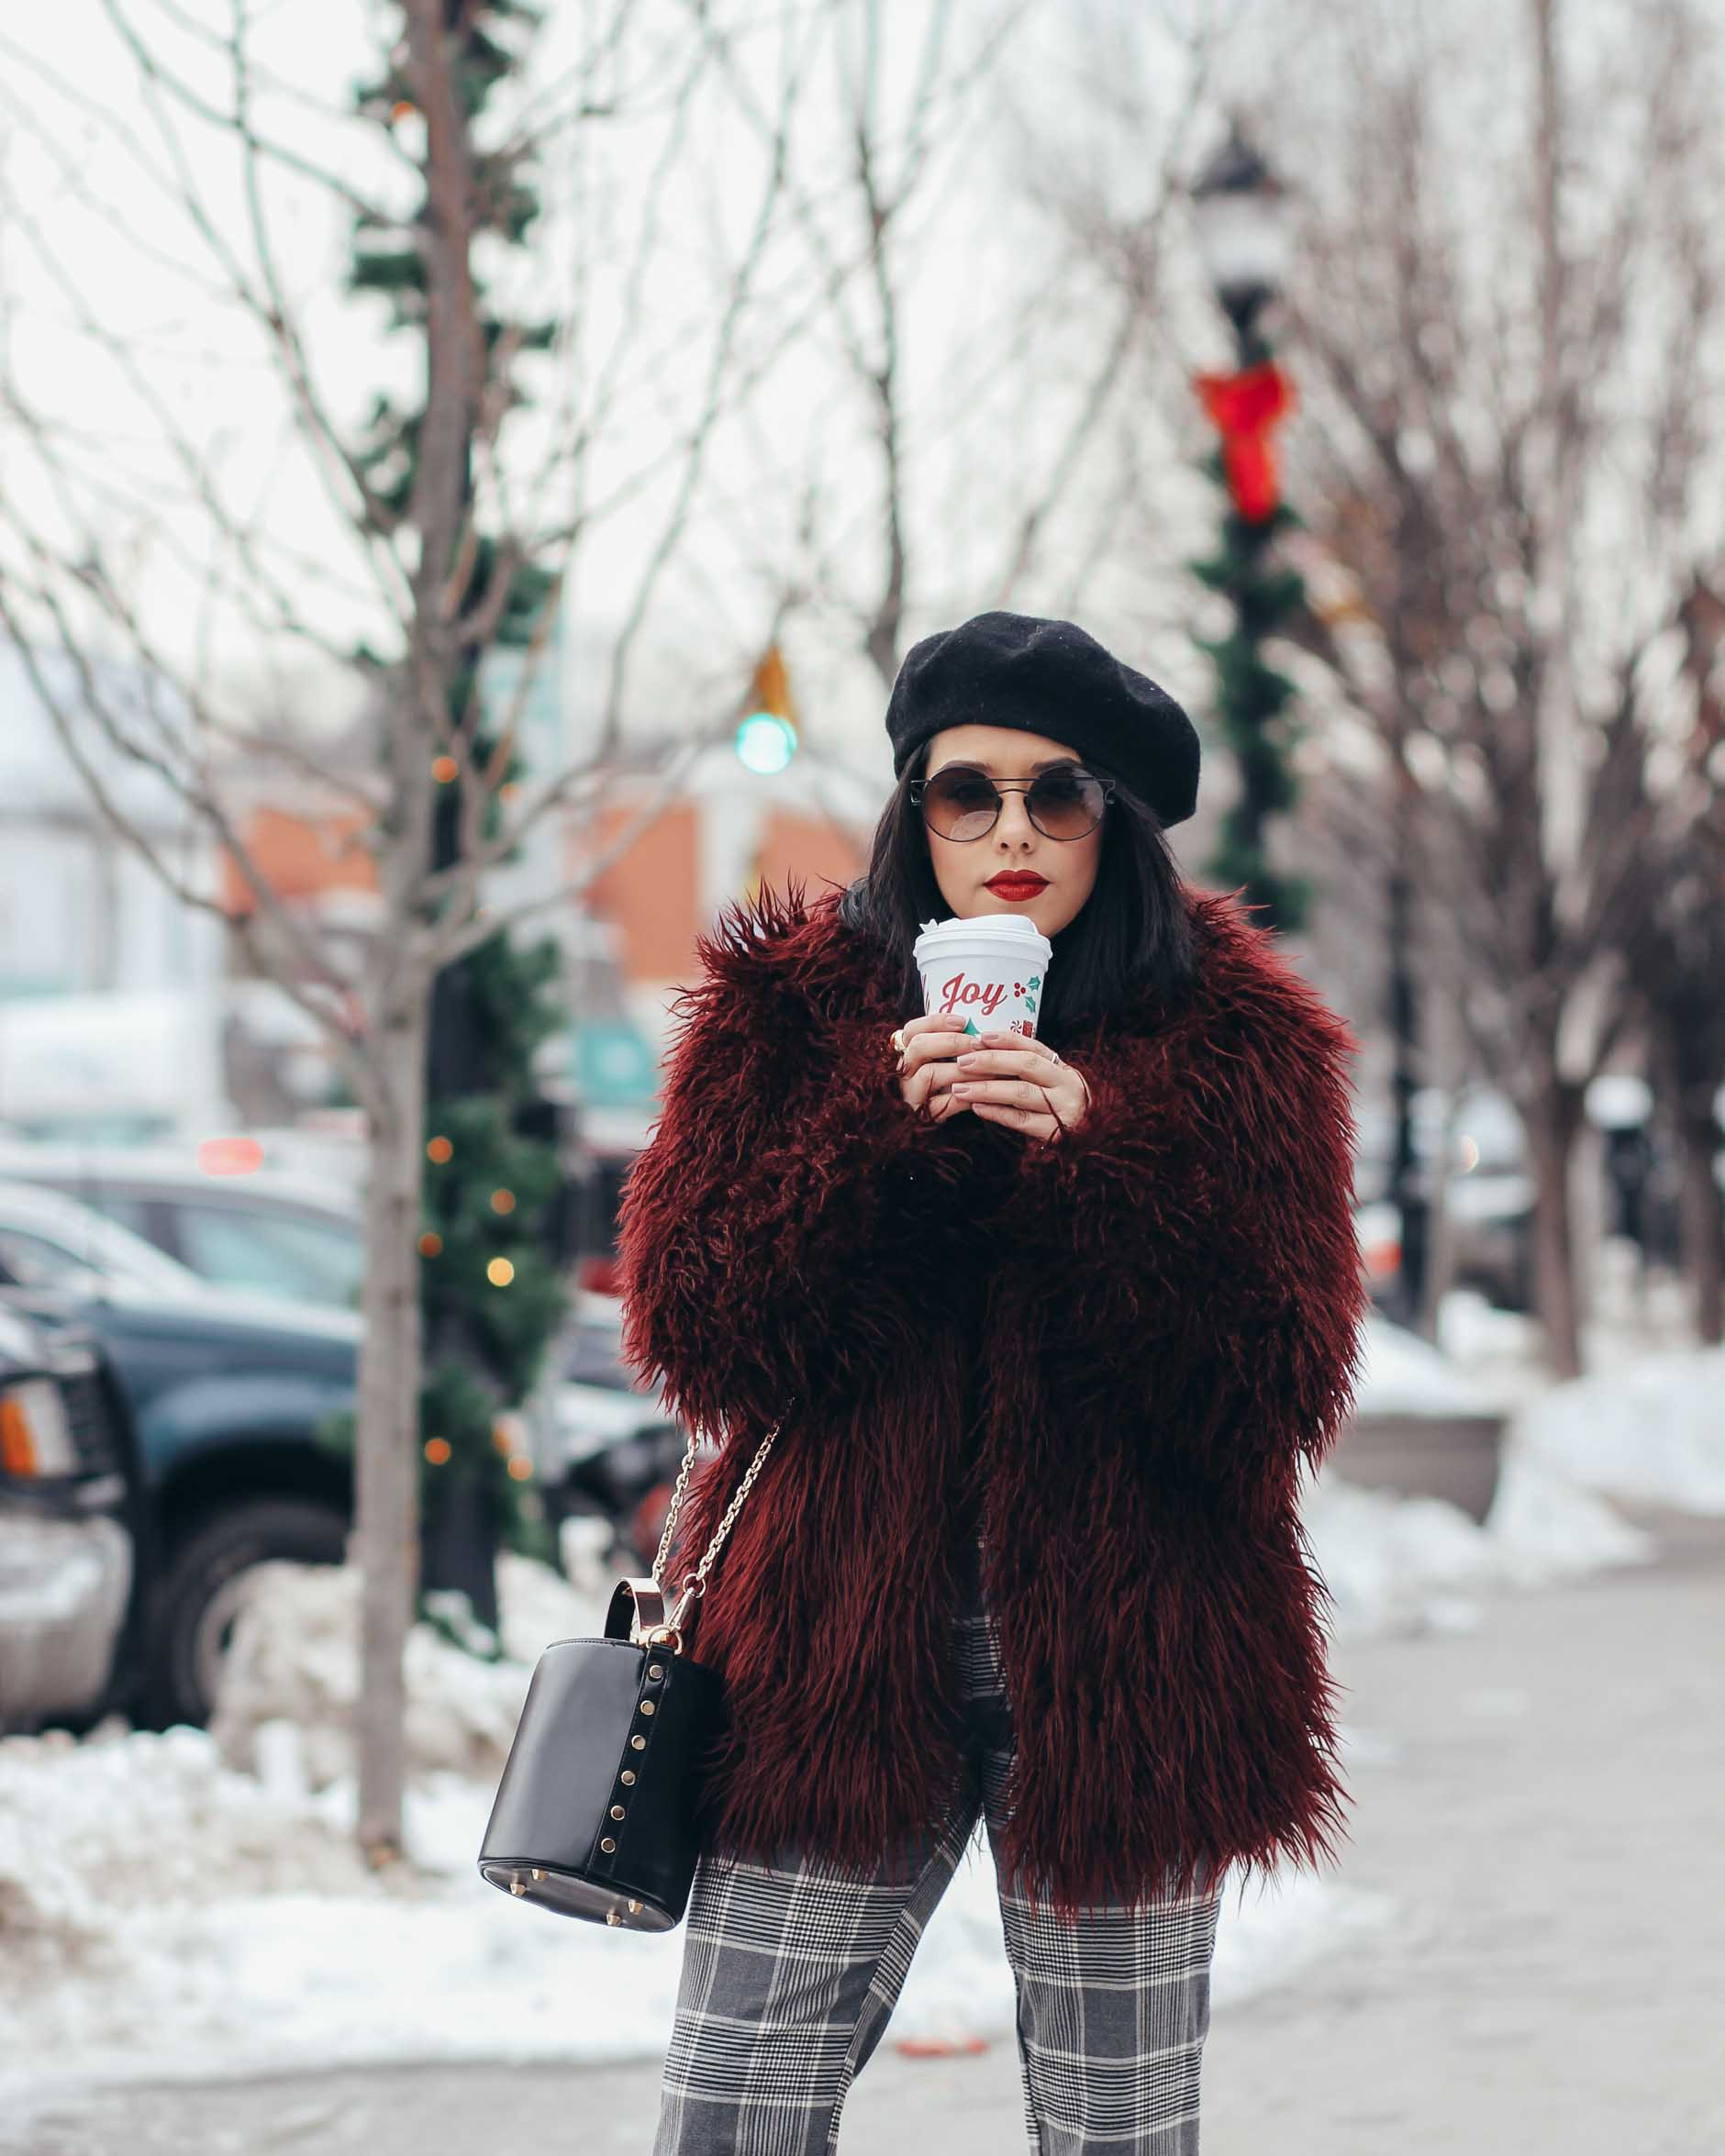 lifestyle blogger naty michele wearing faux fur coat and beret